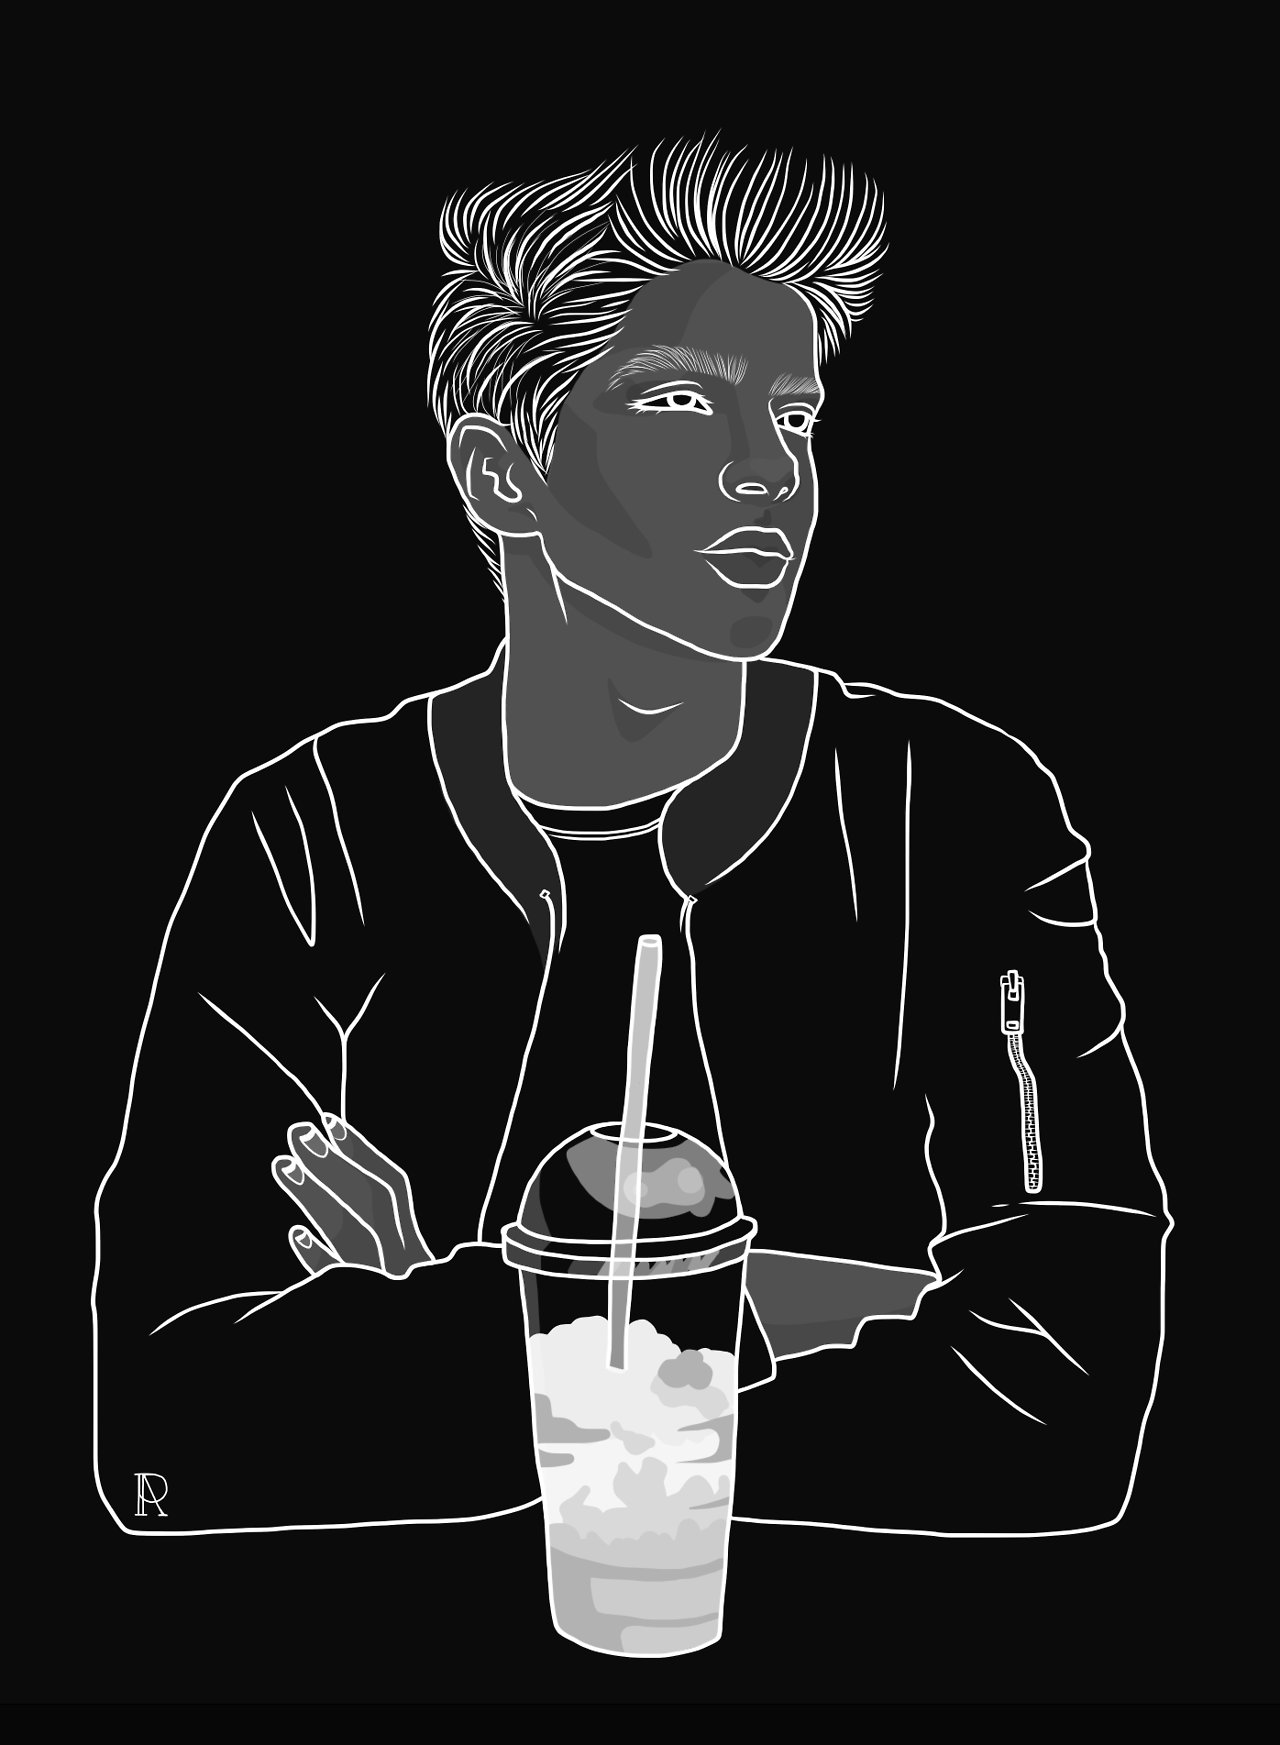 Manu rios black and white boy with drink part 2 its more of an upgrade really outline outlines drawing drawings illustrations illustration model tumblr